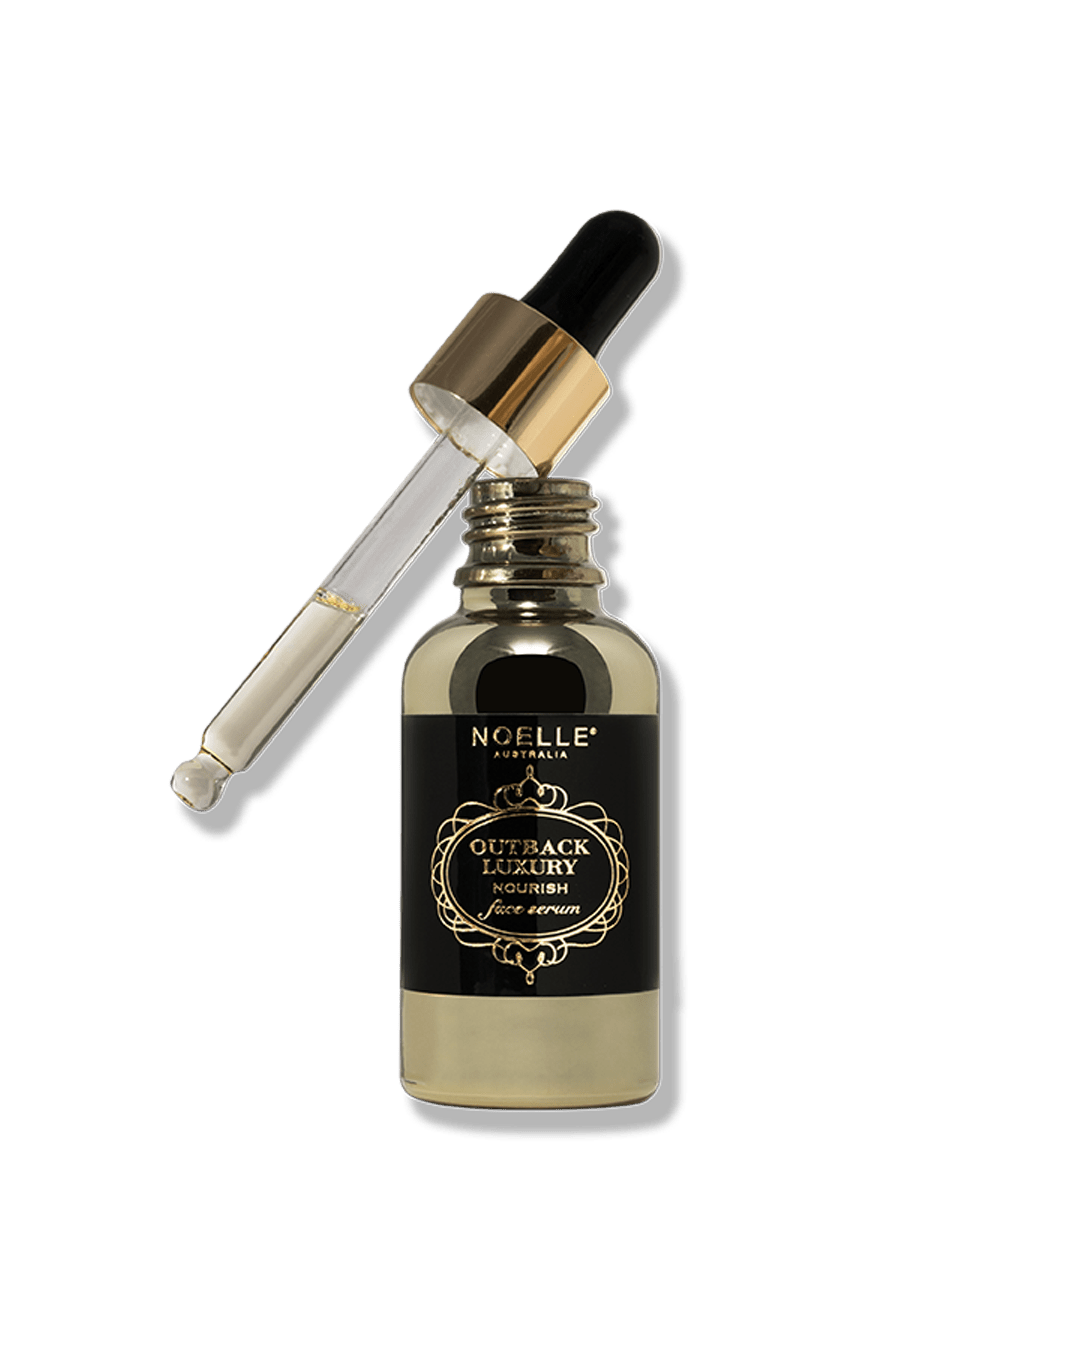 Nourish Face Serum Outback Luxury